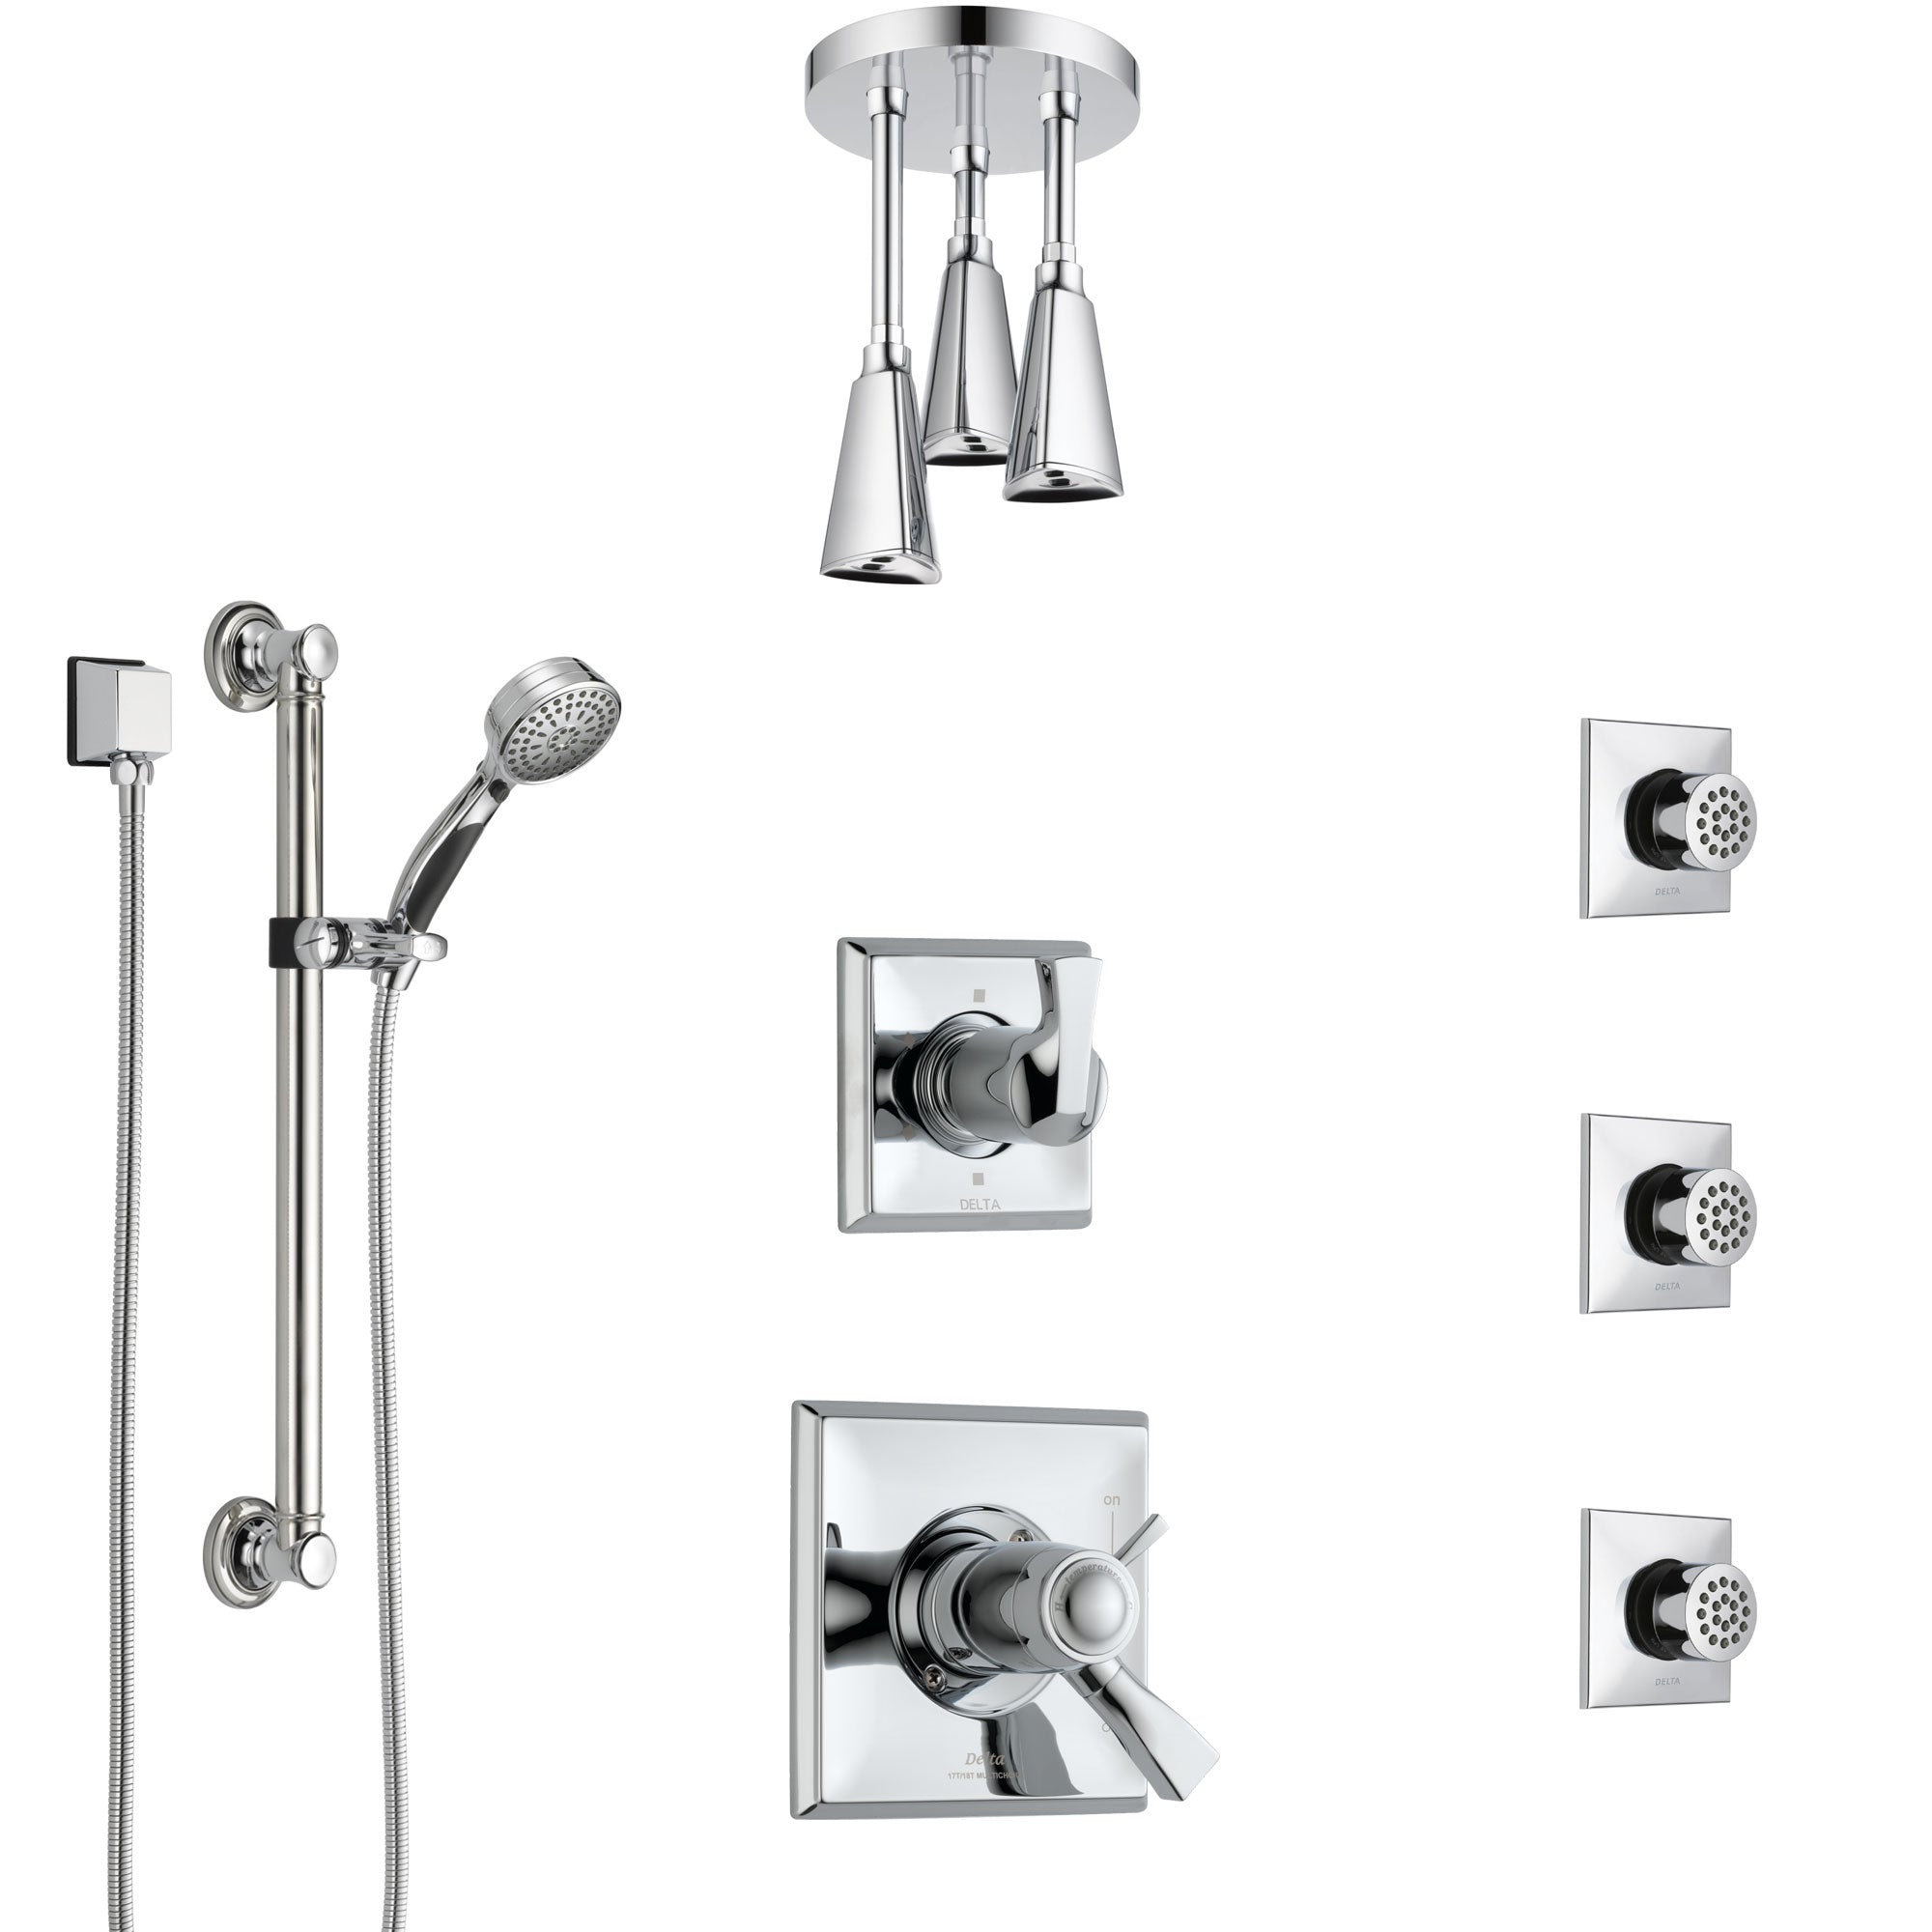 Delta Dryden Chrome Shower System with Dual Thermostatic Control, Diverter, Ceiling Showerhead, 3 Body Sprays, and Grab Bar Hand Shower SS17T5124